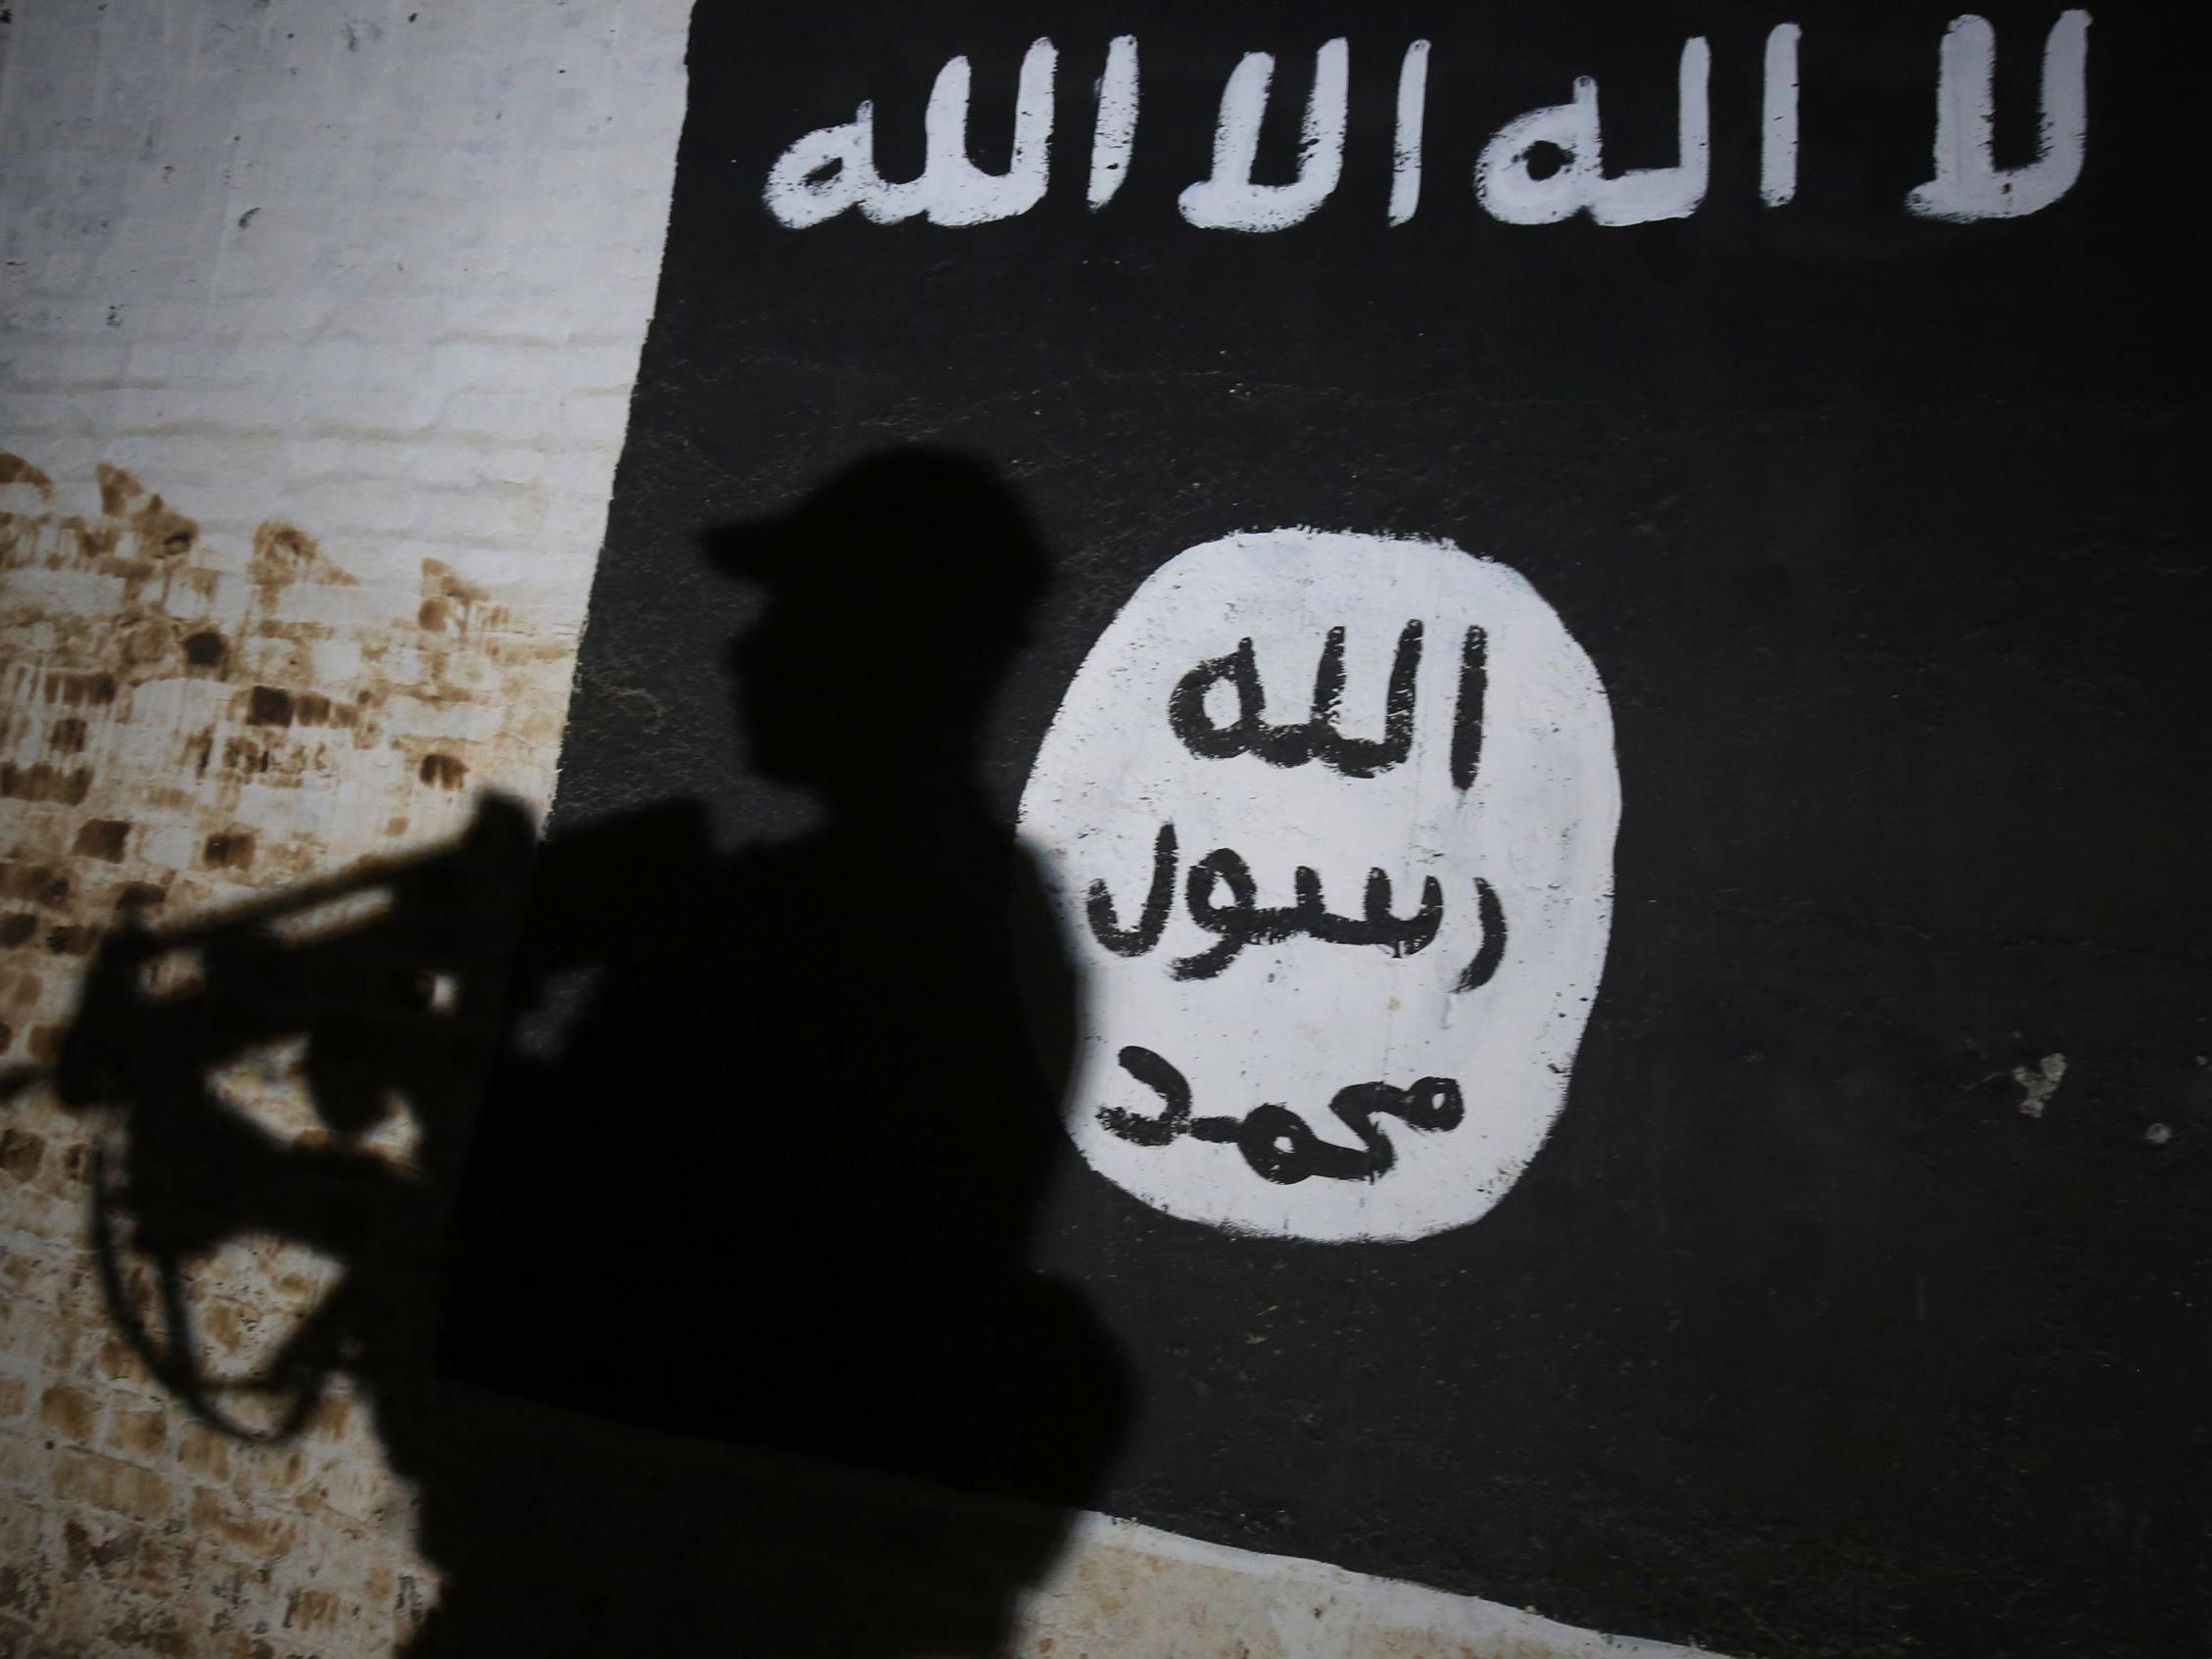 This is how an event more than 1,300 years ago today sparked the birth of Isis